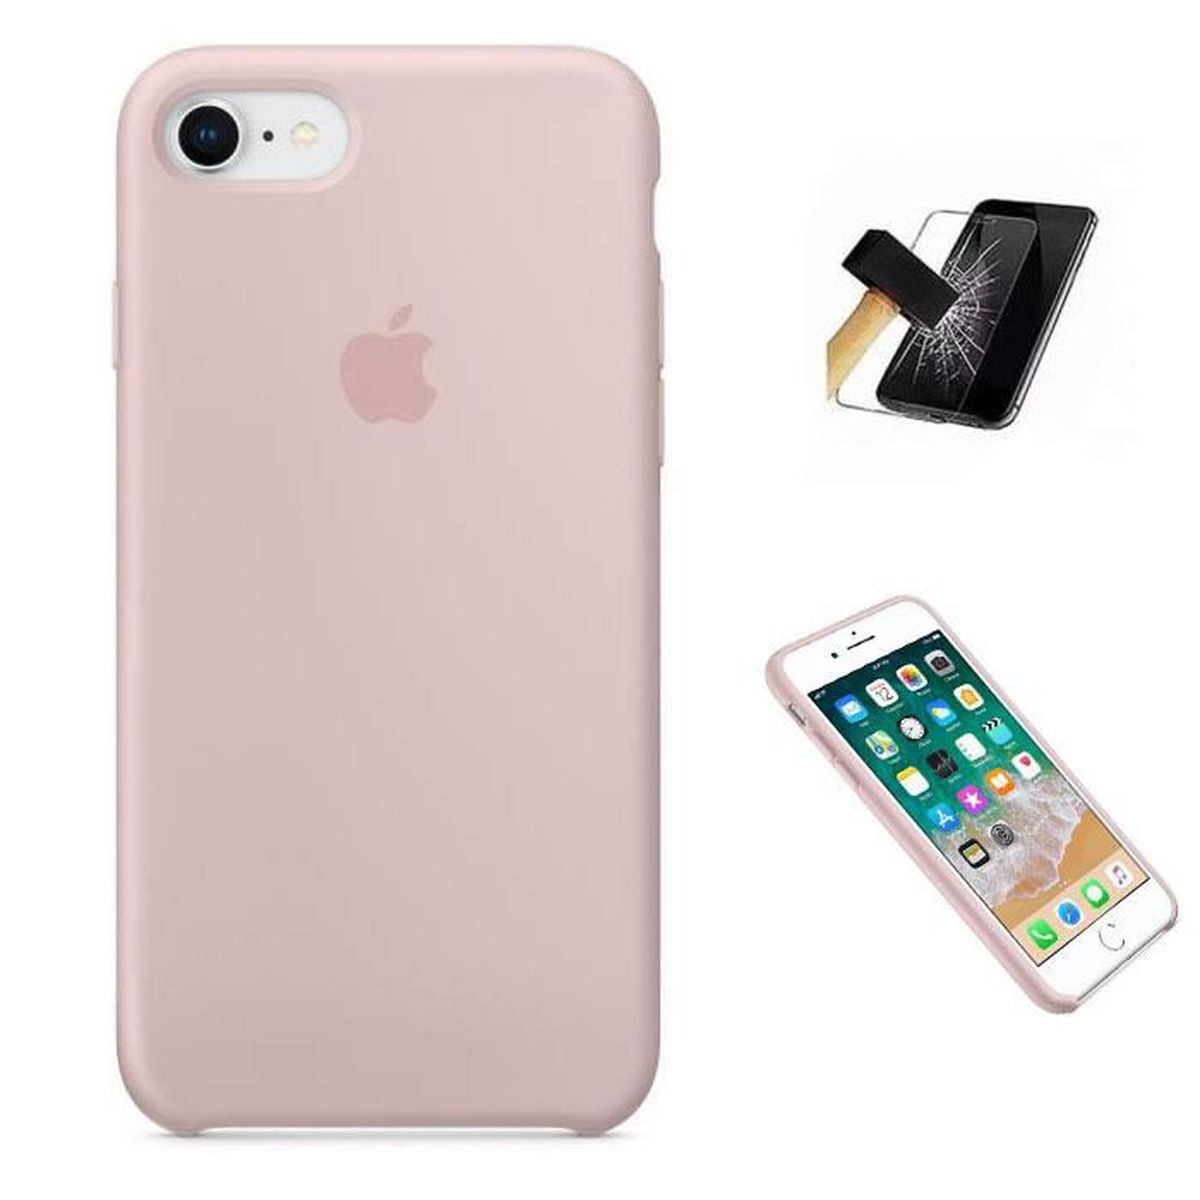 apple coque en silicone pour iphone 6 iphone 6s ro